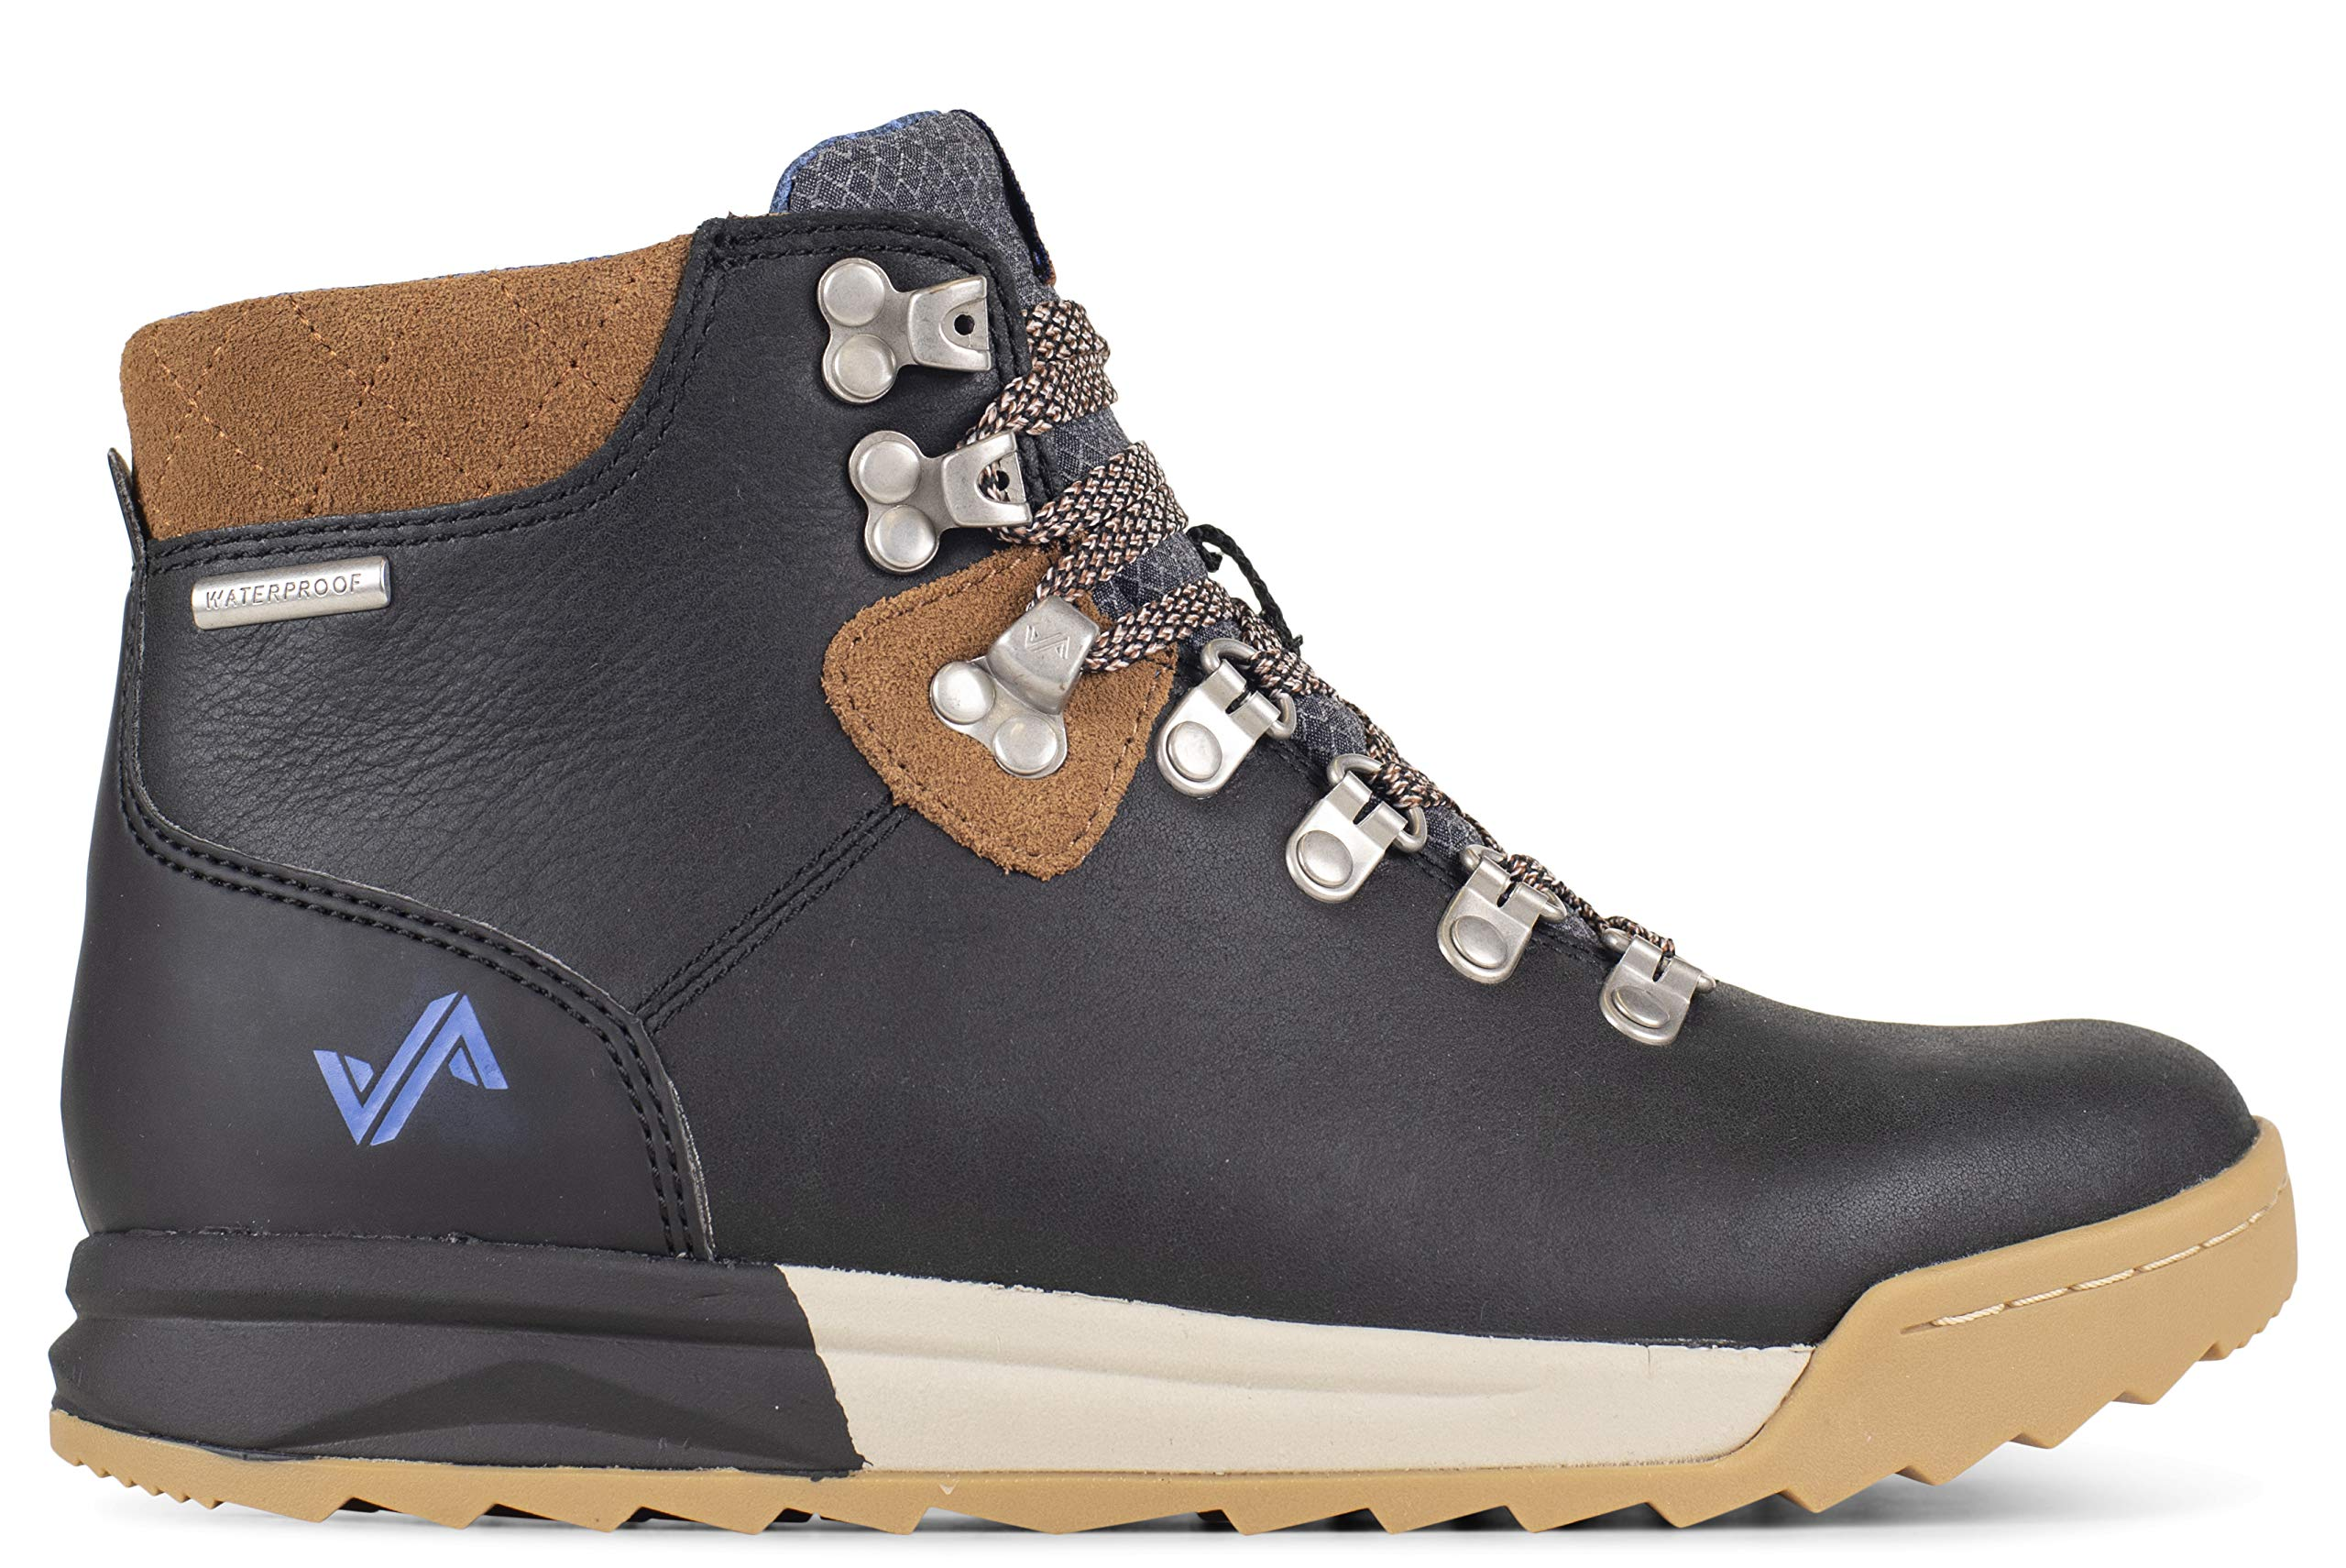 Forsake Patch - Women's Waterproof Premium Leather Hiking Boot (8.5, Black/Tan) by Forsake